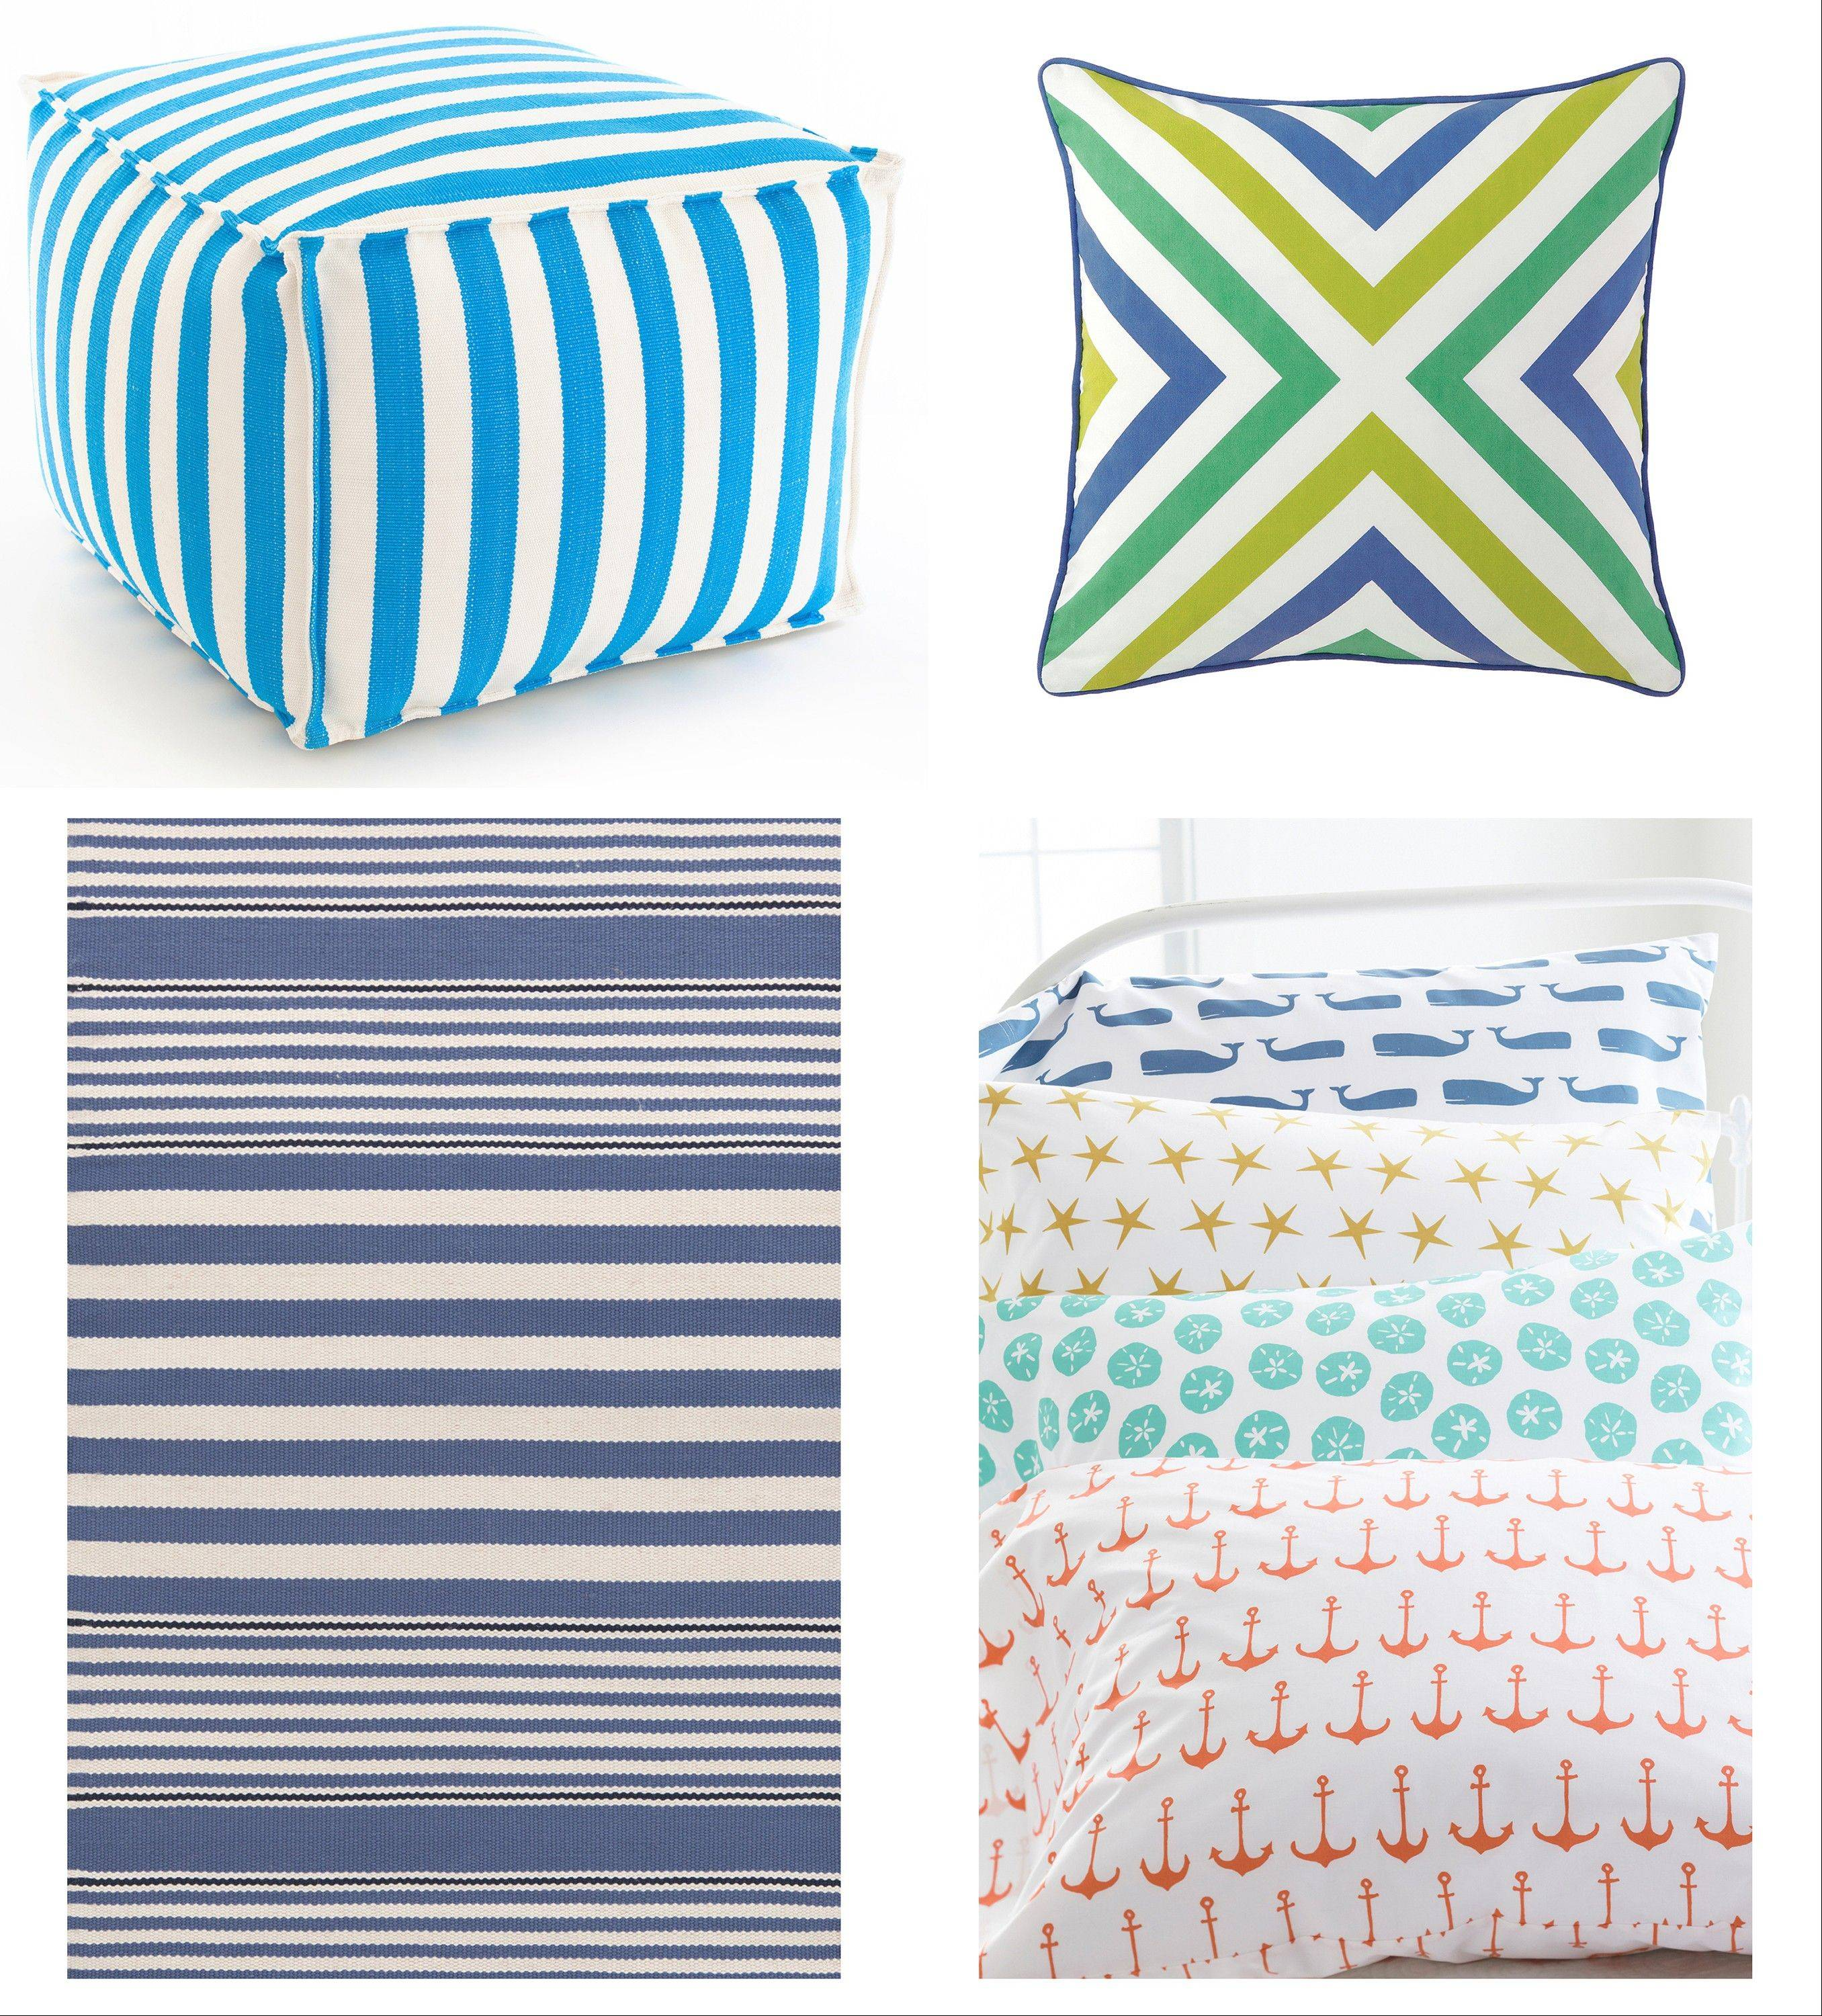 Use indoor-outdoor fabric in surprising places with the Fresh American Trimaran striped pouf in turquoise, top left, or Company C's chevron Julep pillow, top right. Indoor-outdoor rugs, such as the Beckham striped denim rug, bottom left, are crucial for beach houses; Garnet Hill's mini-print bedding, bottom right, features whimsical sea-themed prints.